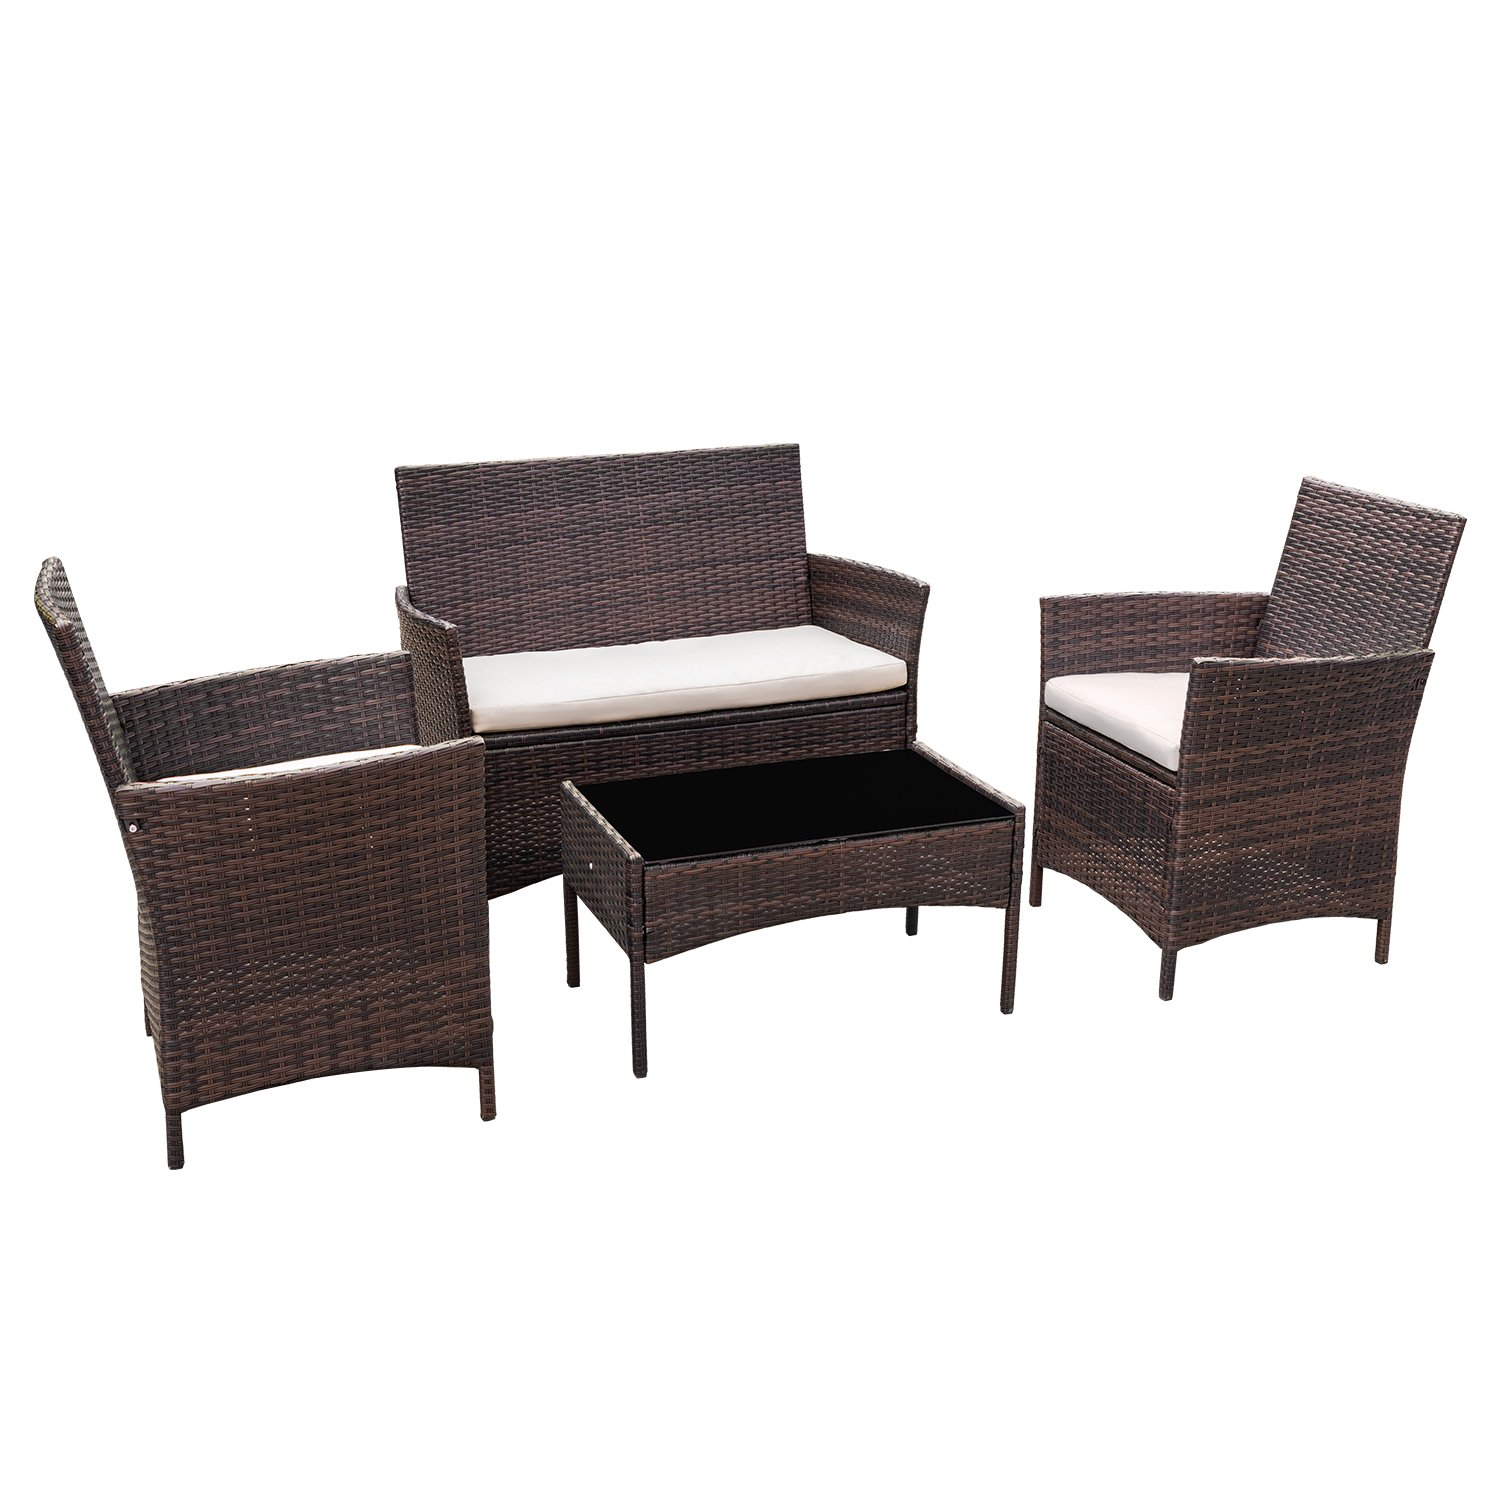 Flamaker Outdoor Furniture Patio Set Cushioned PE Wicker Rattan Chairs with Coffee Table 4 PCS for Garden Poolside Porch Backyard Lawn Balcony Use